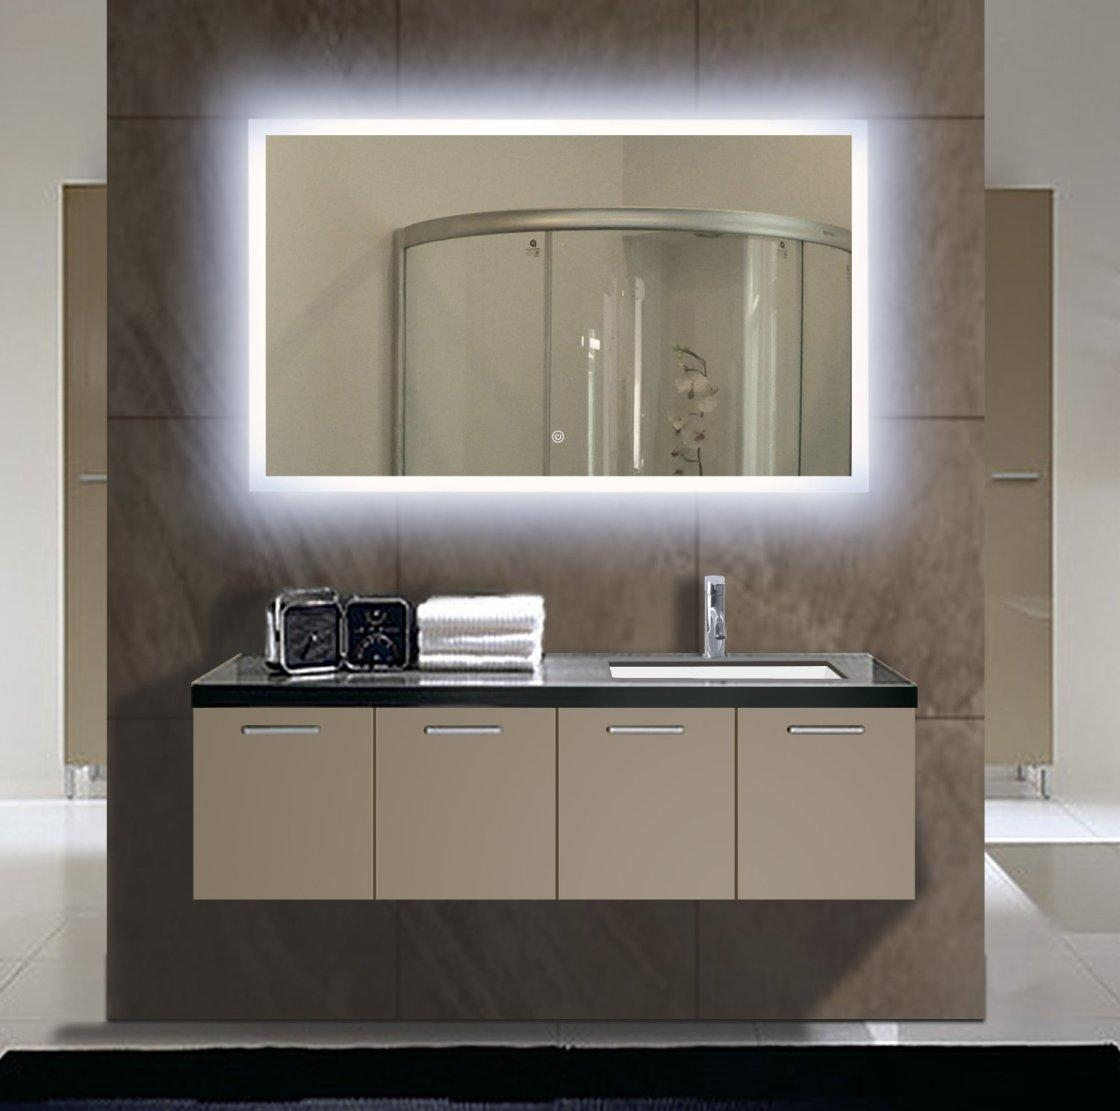 Vanity Wall Mirrors – Wall Shelves For Bathroom Wall Mirrors With Lights (Photo 17 of 20)